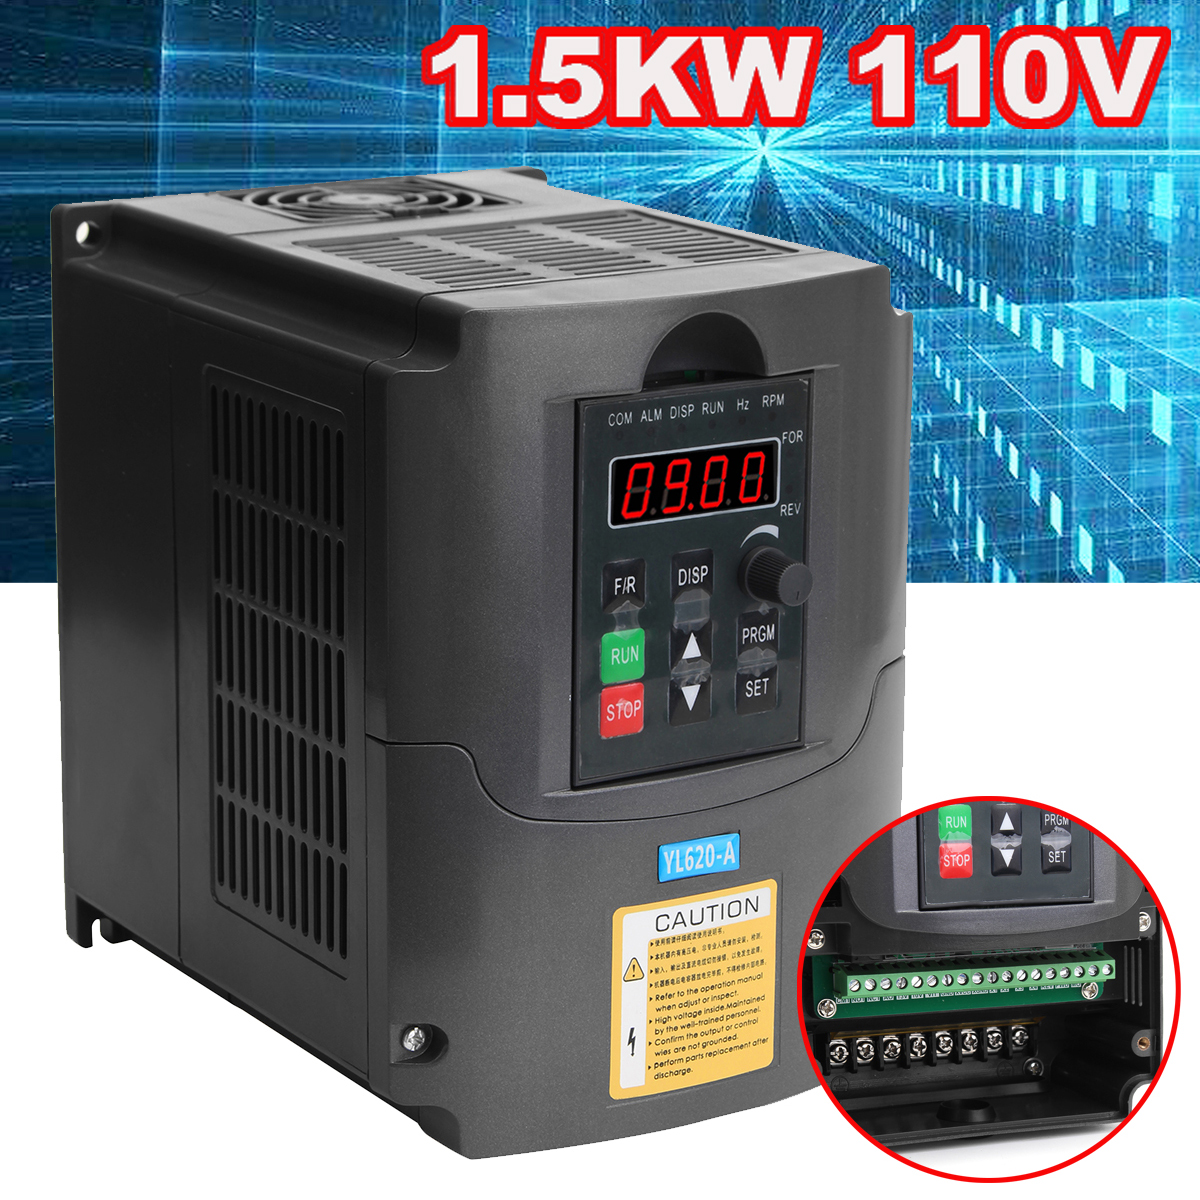 New 110V 1.5kw AC Variable Frequency Inverter Converter 3 Phase Output Built-in PLC Single Phase Space Voltage Vector Modulation new original sgdm 15ada 200v servopack single 3 phase